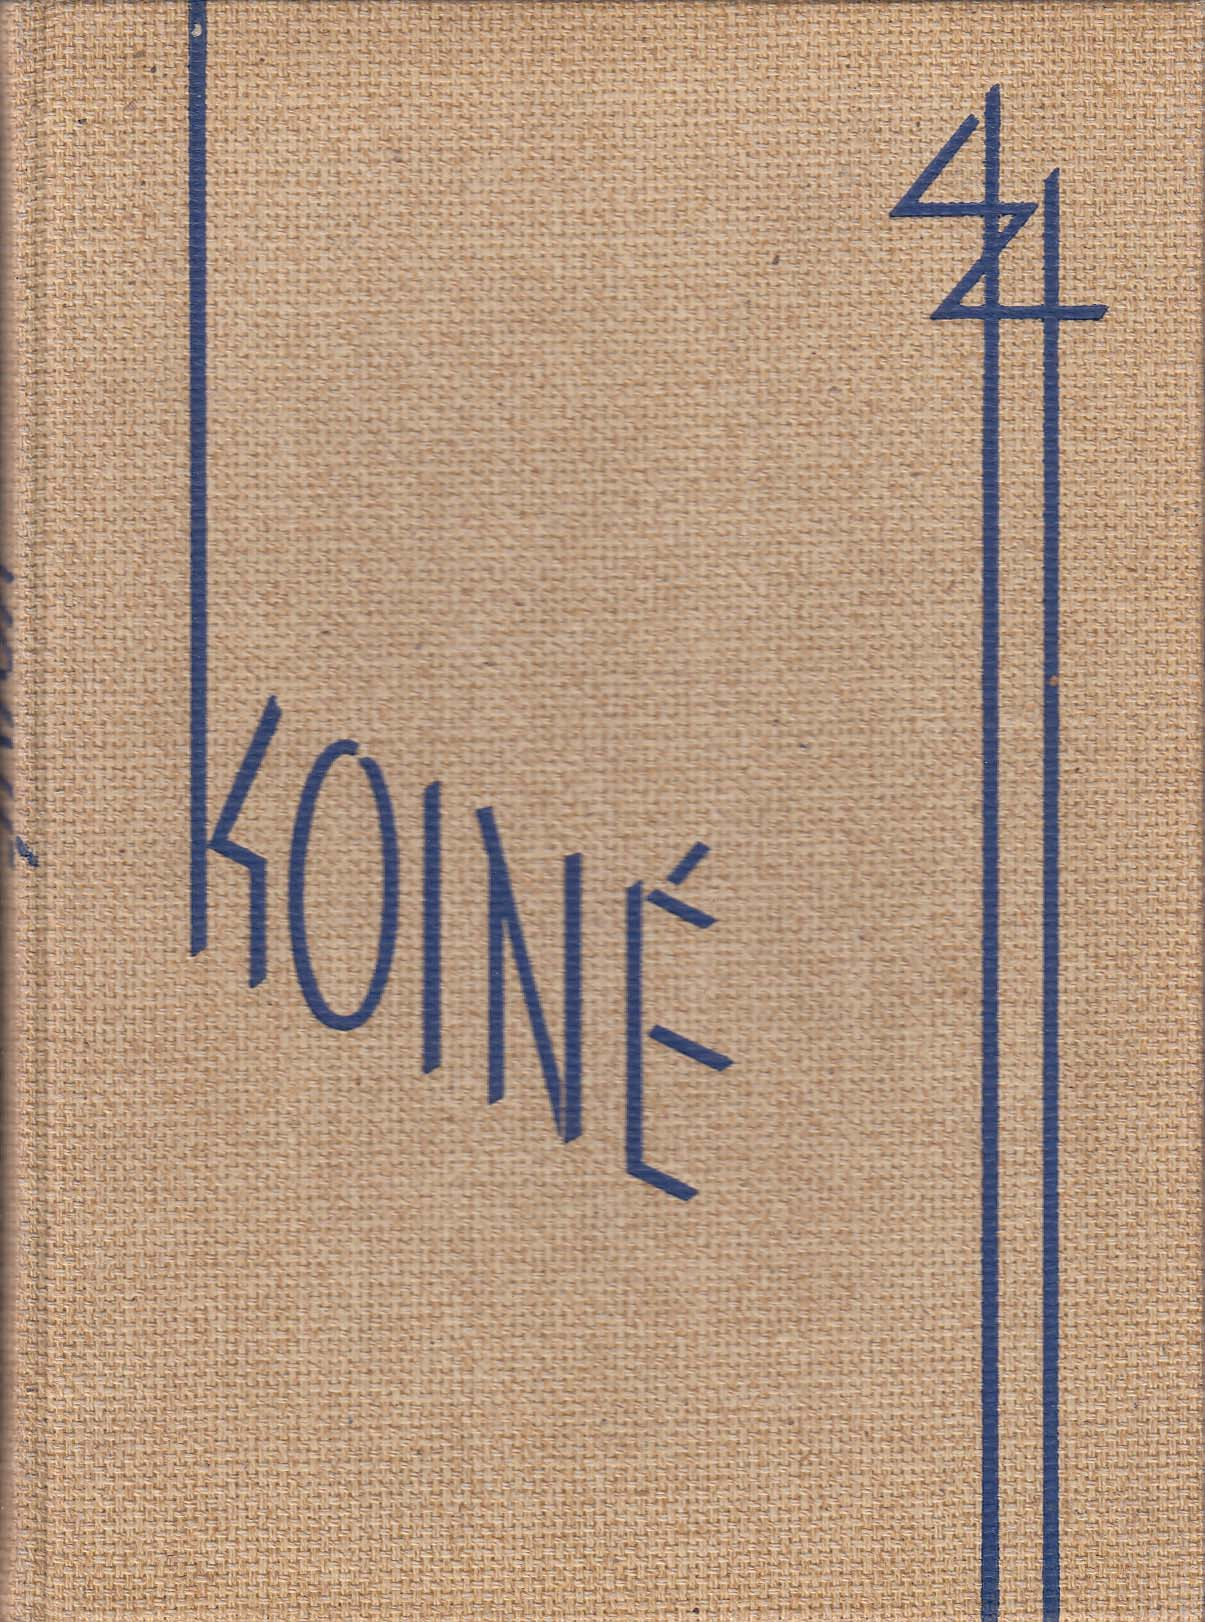 Koine 1944 Yearbook Connecticut College for Women New London Connecticut